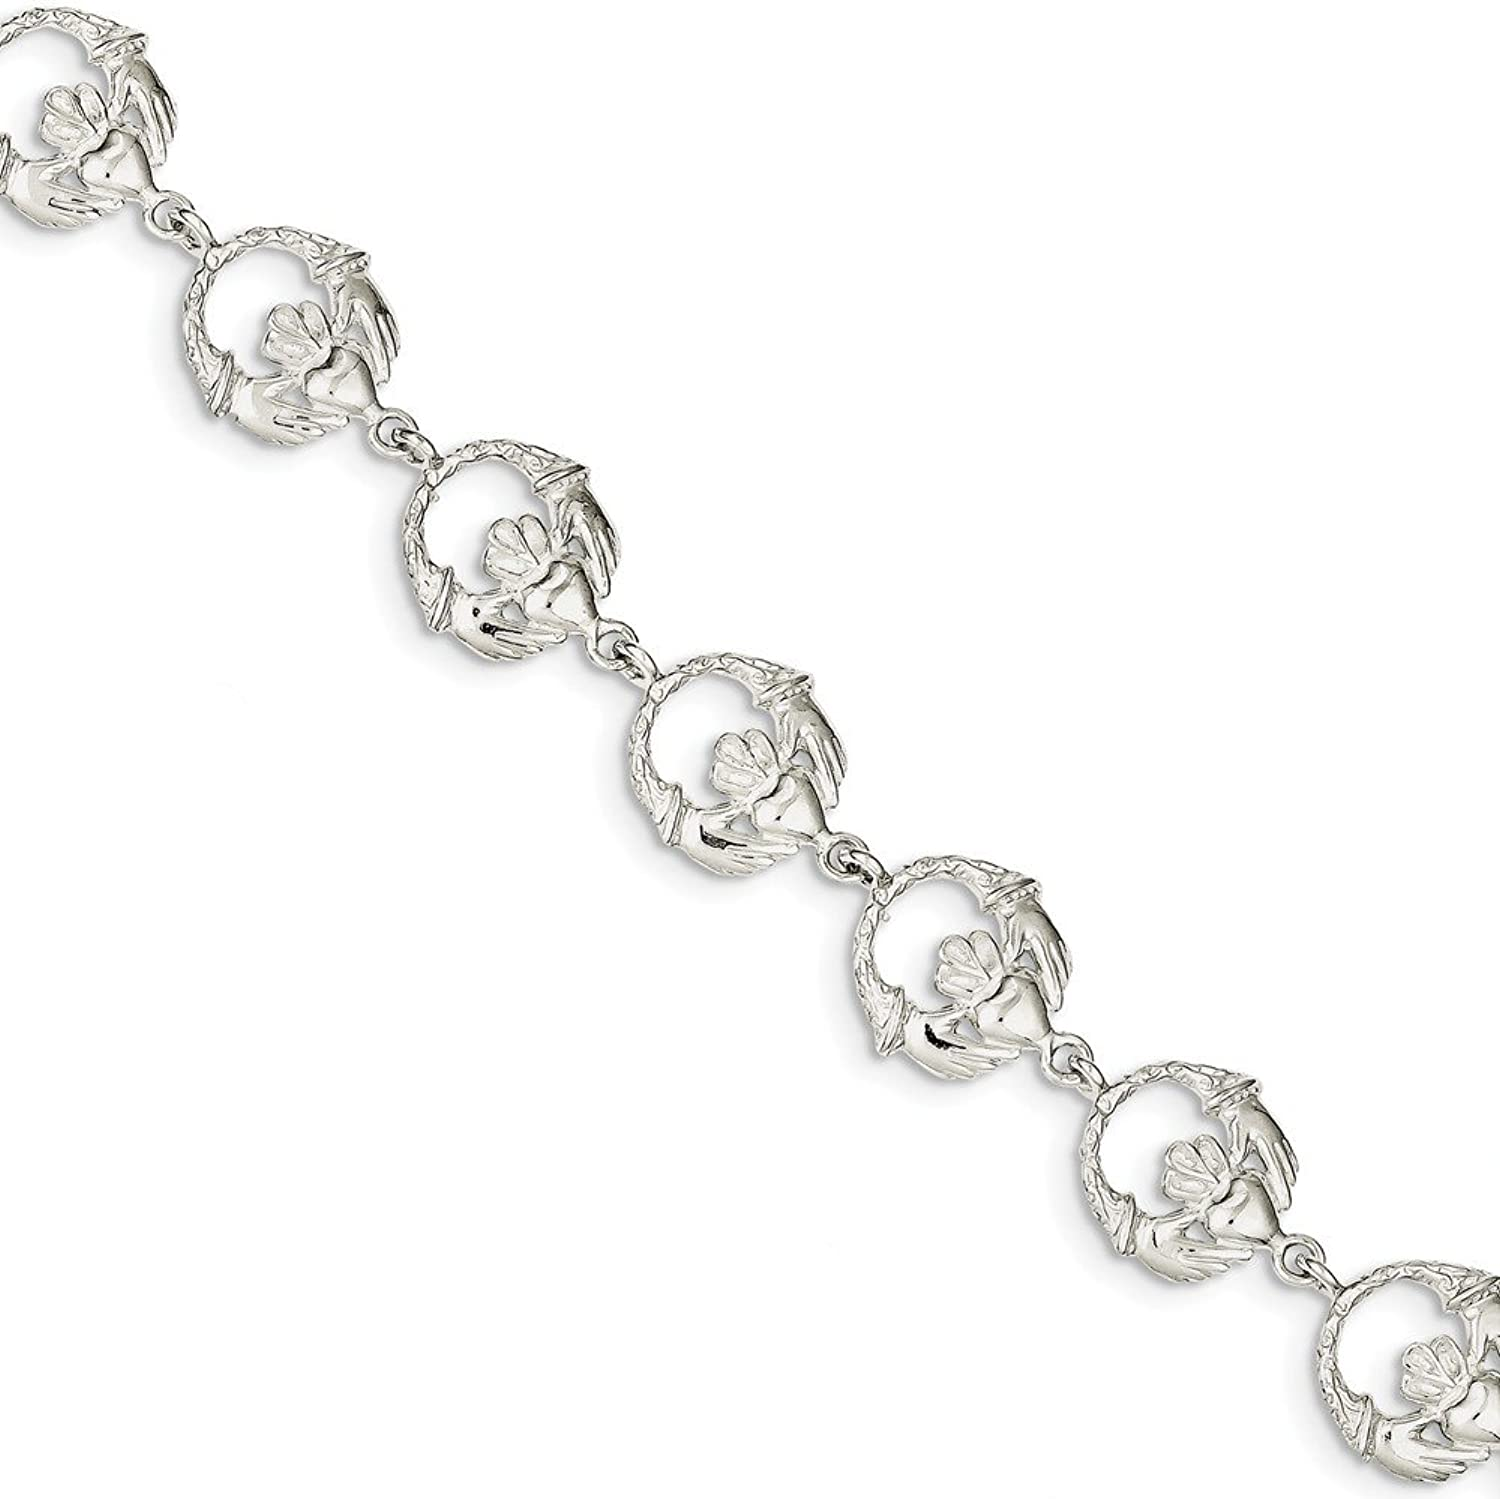 Beautiful Sterling silver 925 sterling Sterling Silver Claddagh Bracelet